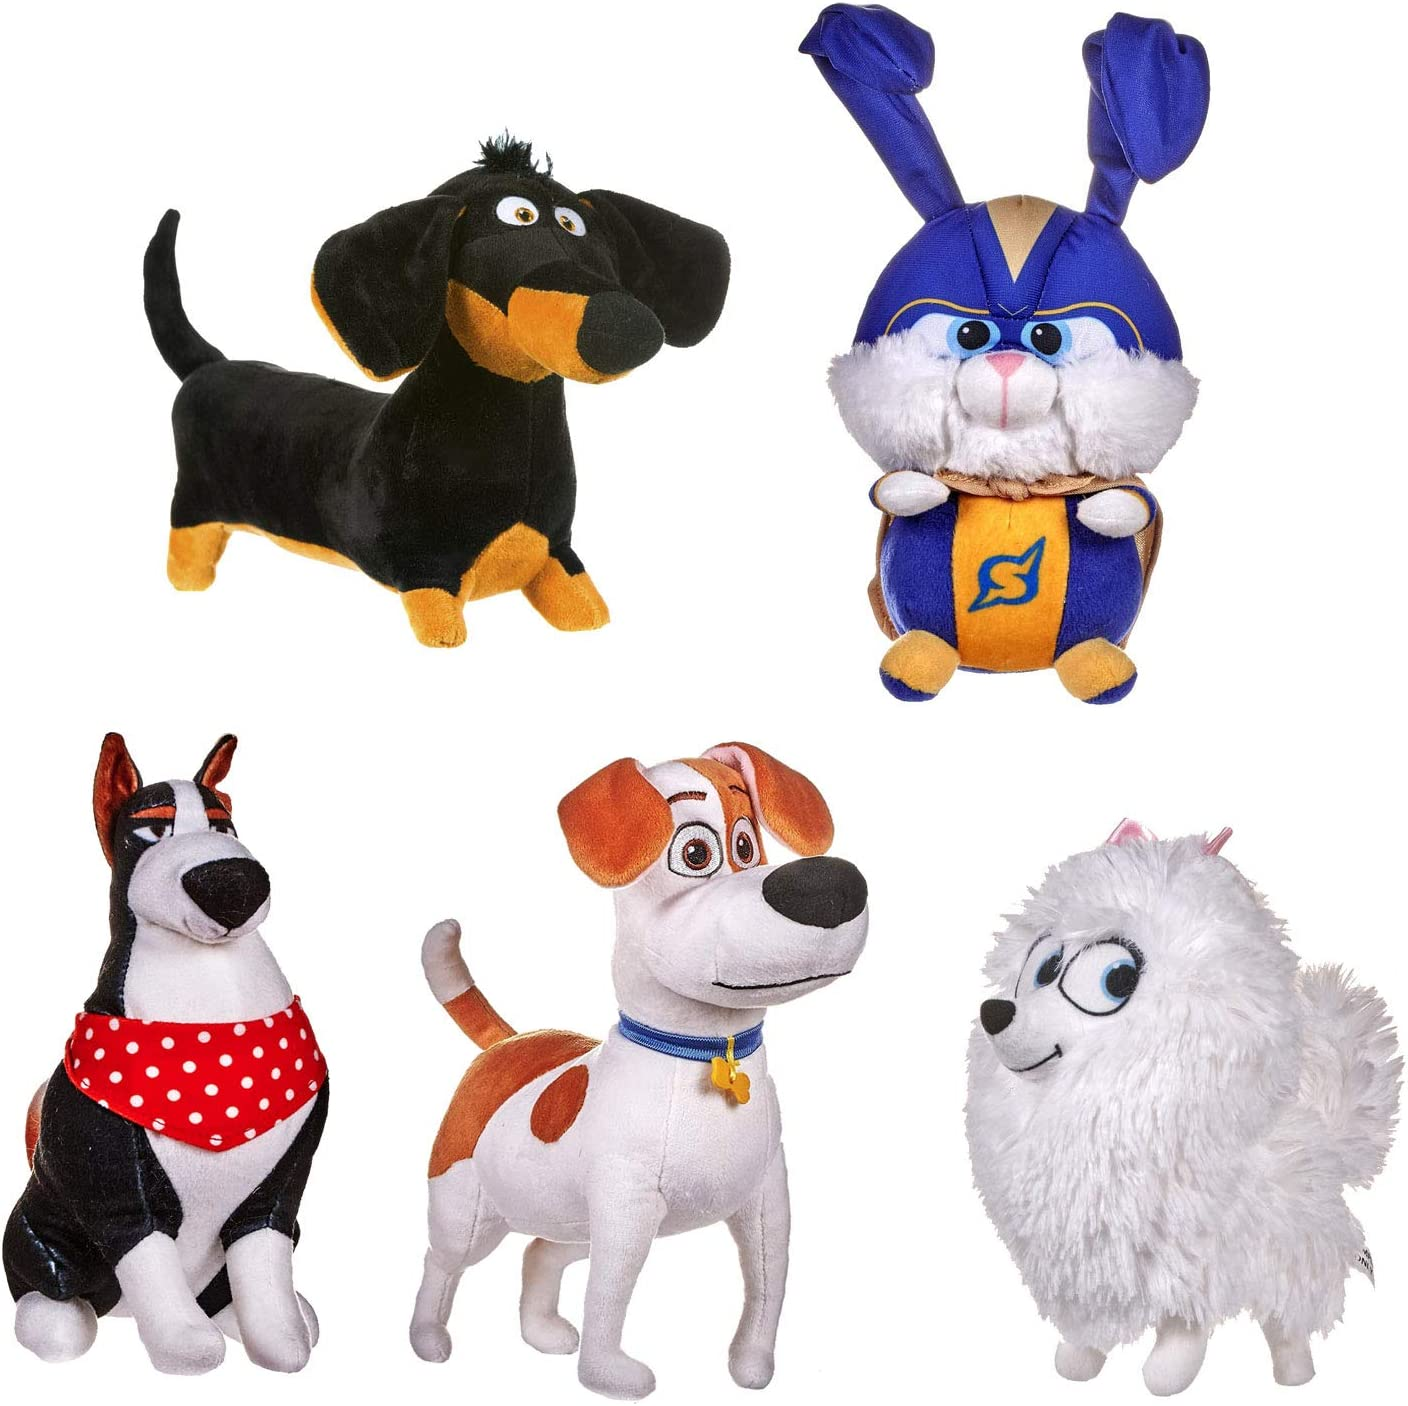 Max Secret Life Of Pets 2 Super Snowball /& Gidget Set of 5 Soft Plush 8 20cm Toy Rooster Buddy